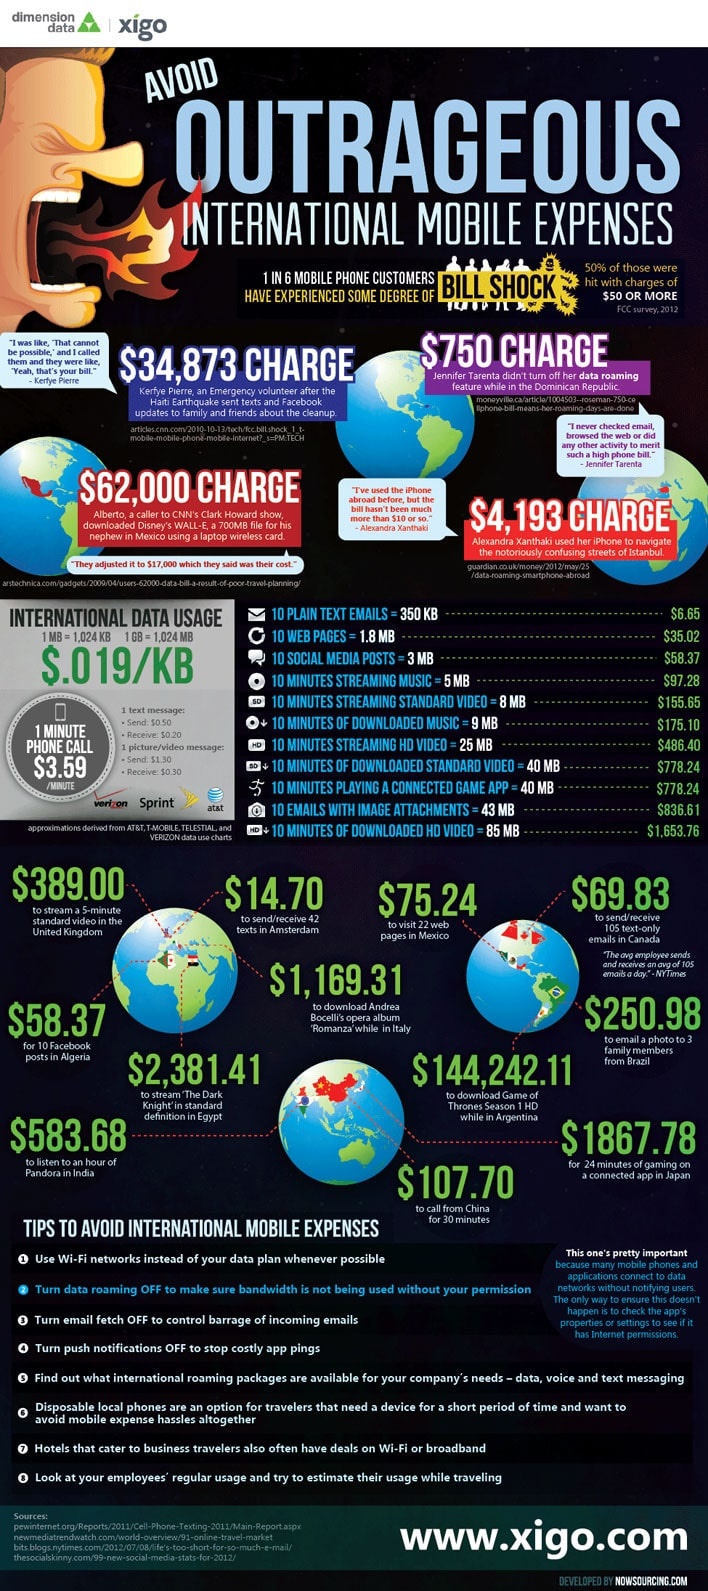 outrageous-international-mobile-charges-infographic